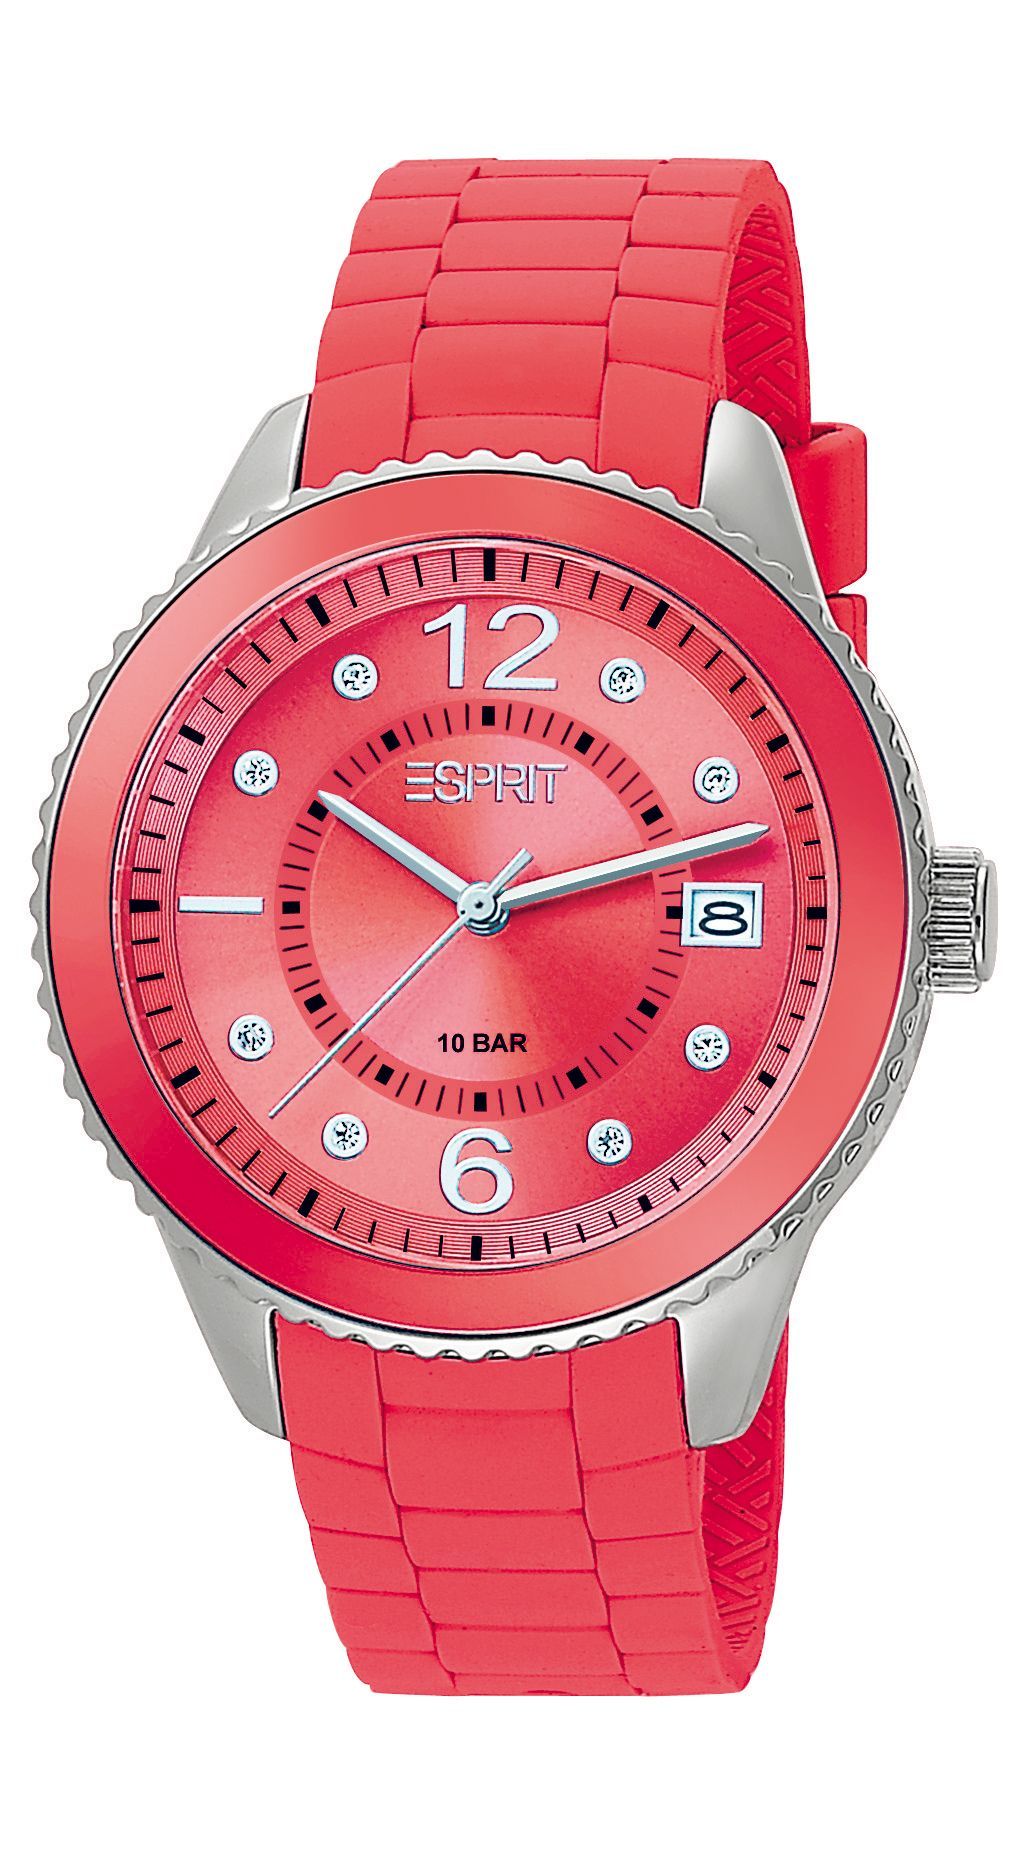 Esprit Marin 68 Speed Summer Watch Red Sold At All Metro Departmental Stores Visit Www Metro Com Sg For More Information Or Like Our Facebook Jam Tangan Jam